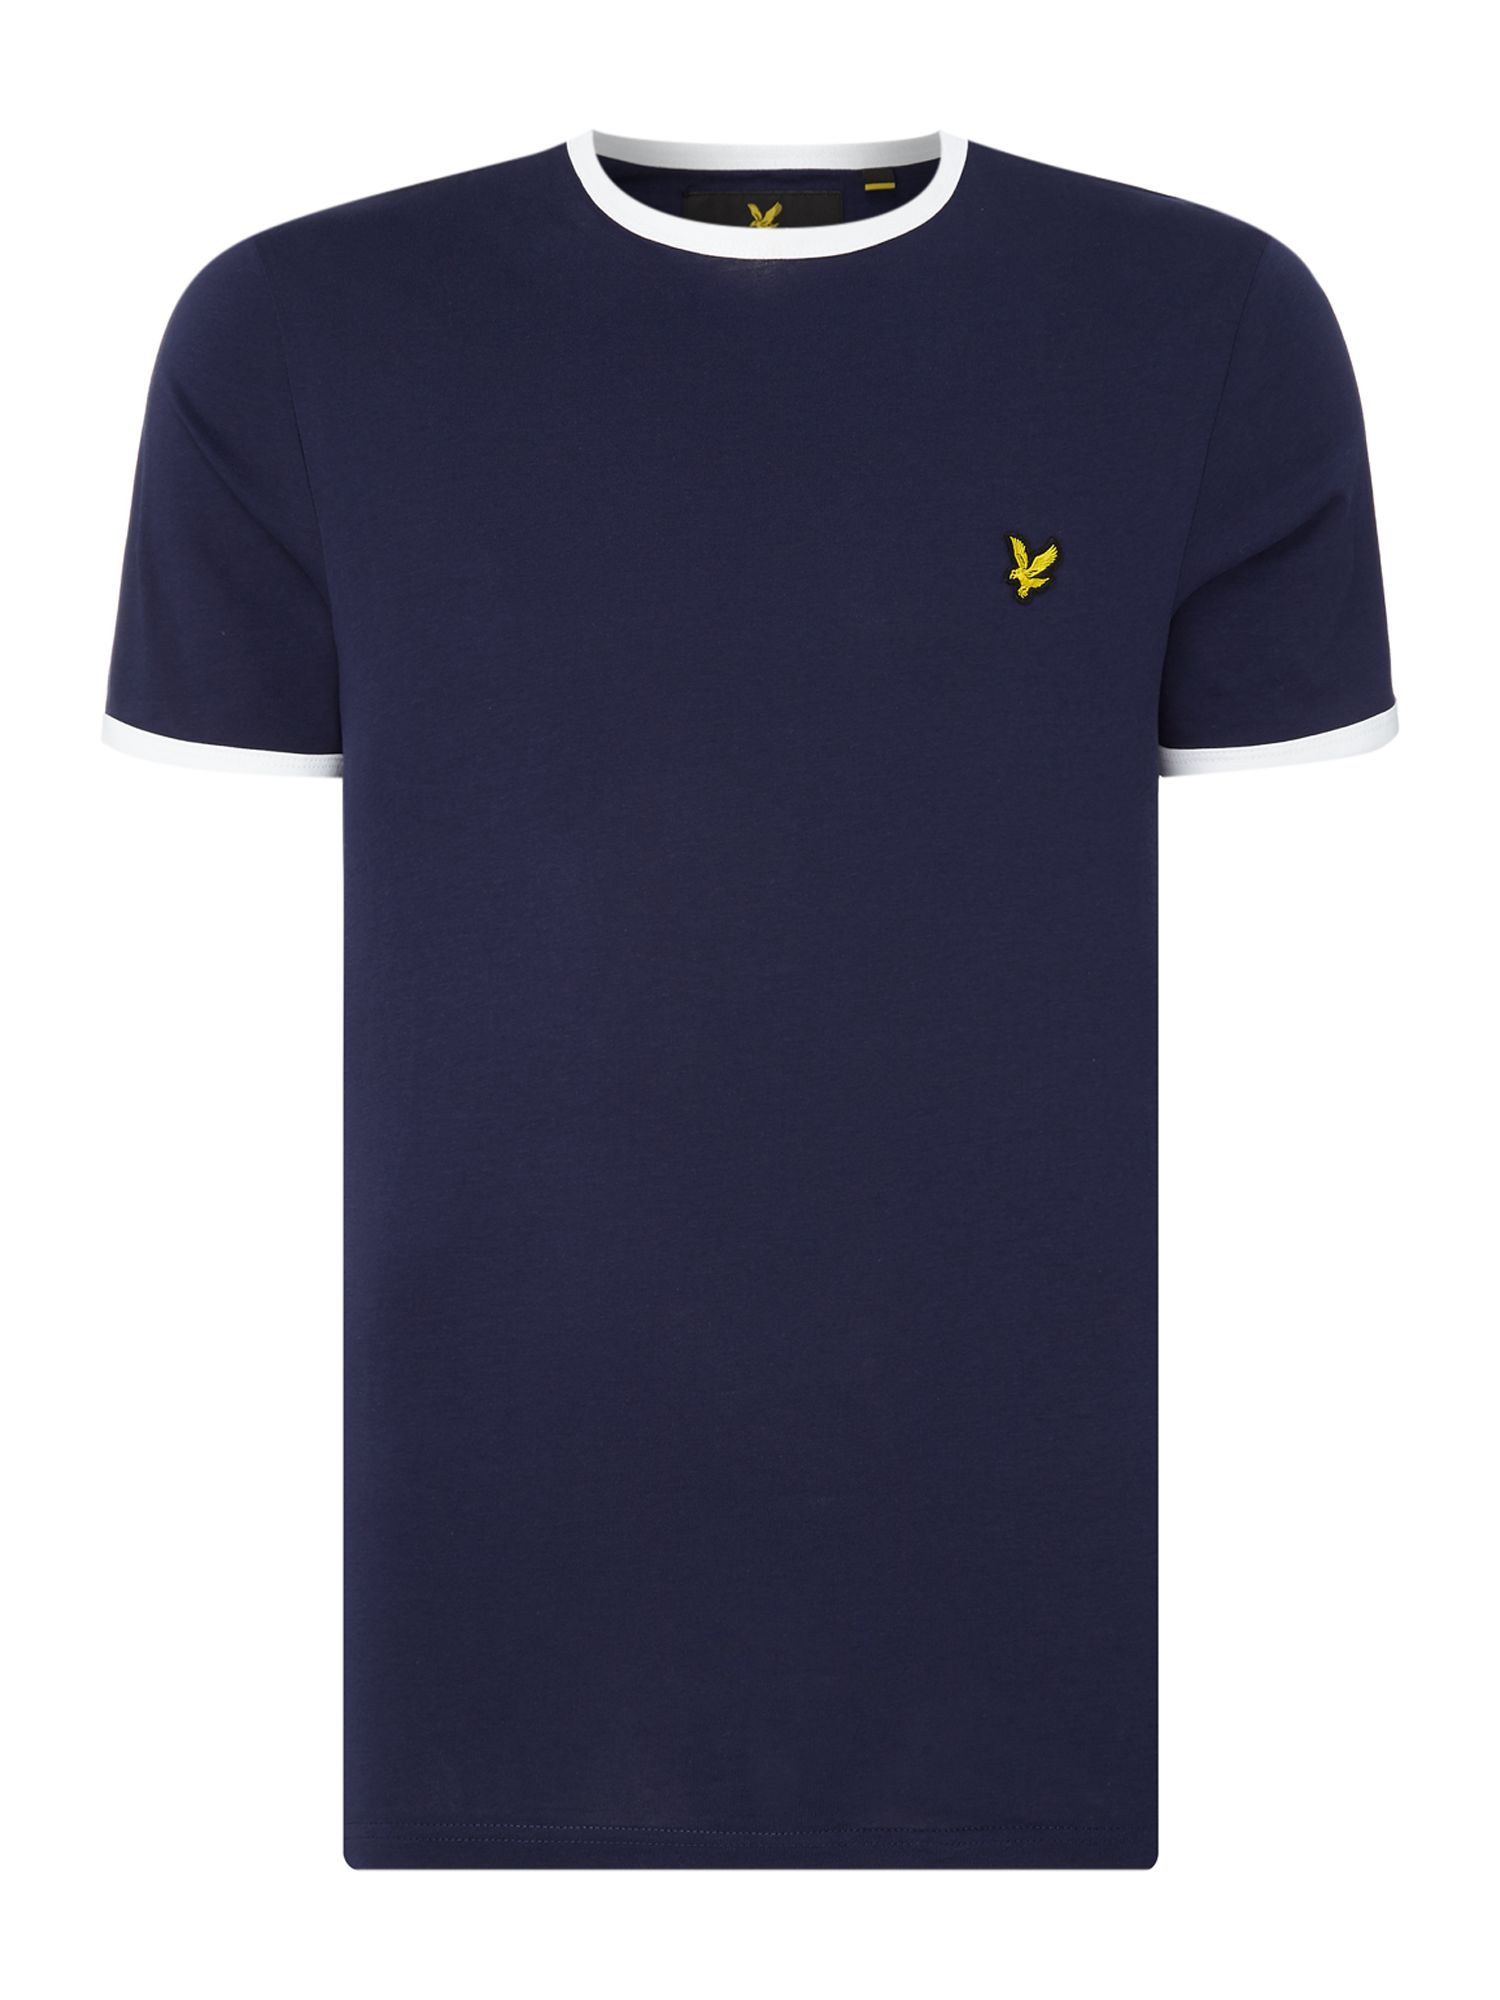 Men's Lyle and Scott Ringer crew neck short sleeve t-shirt, Blue